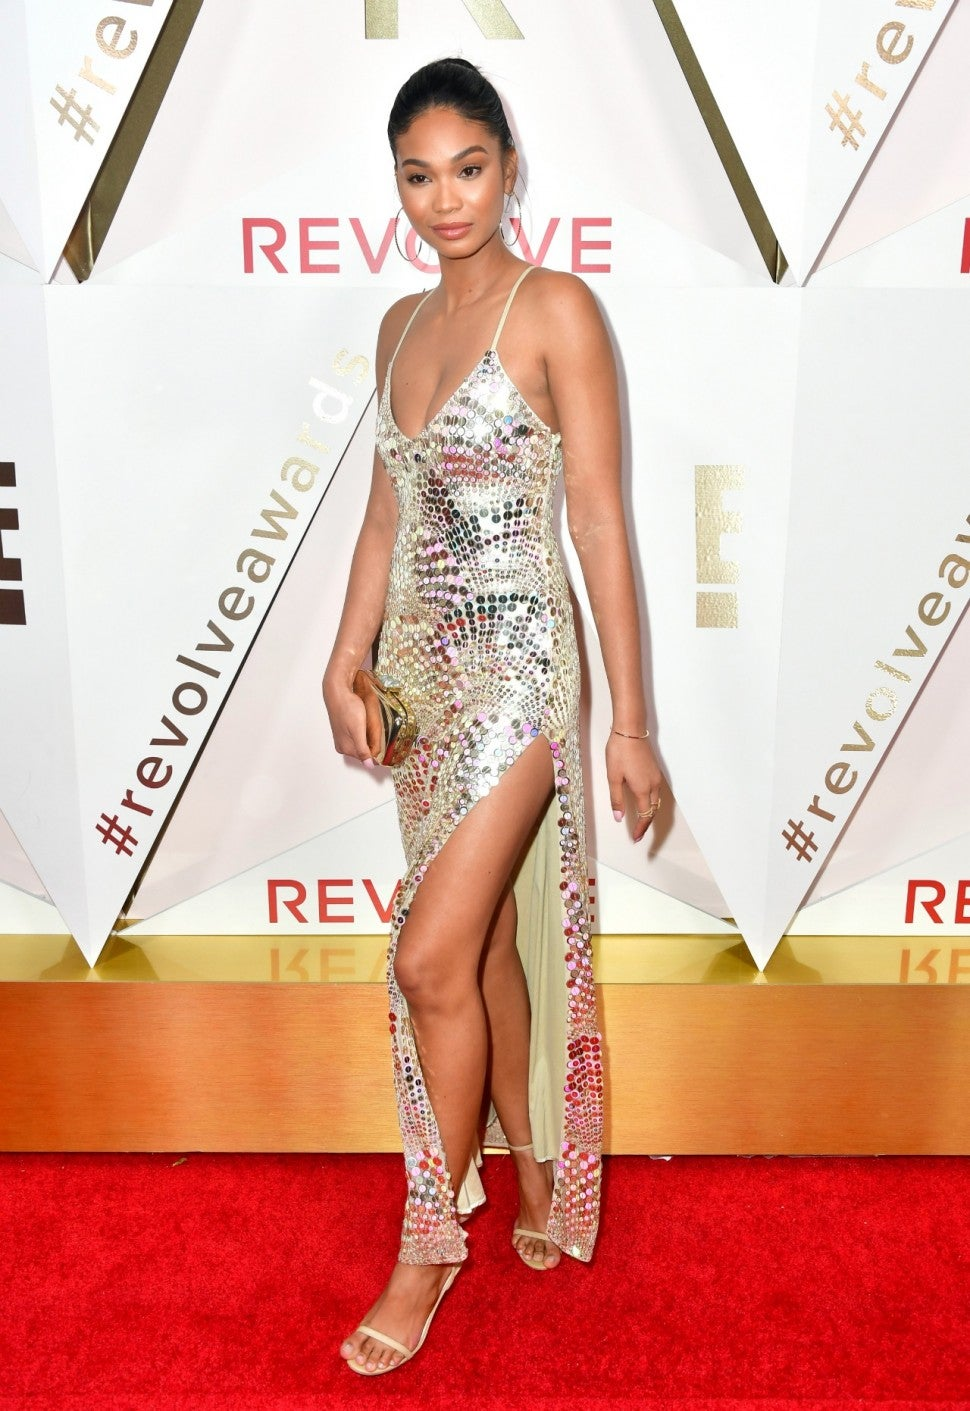 Chanel Iman at #RevolveAwards